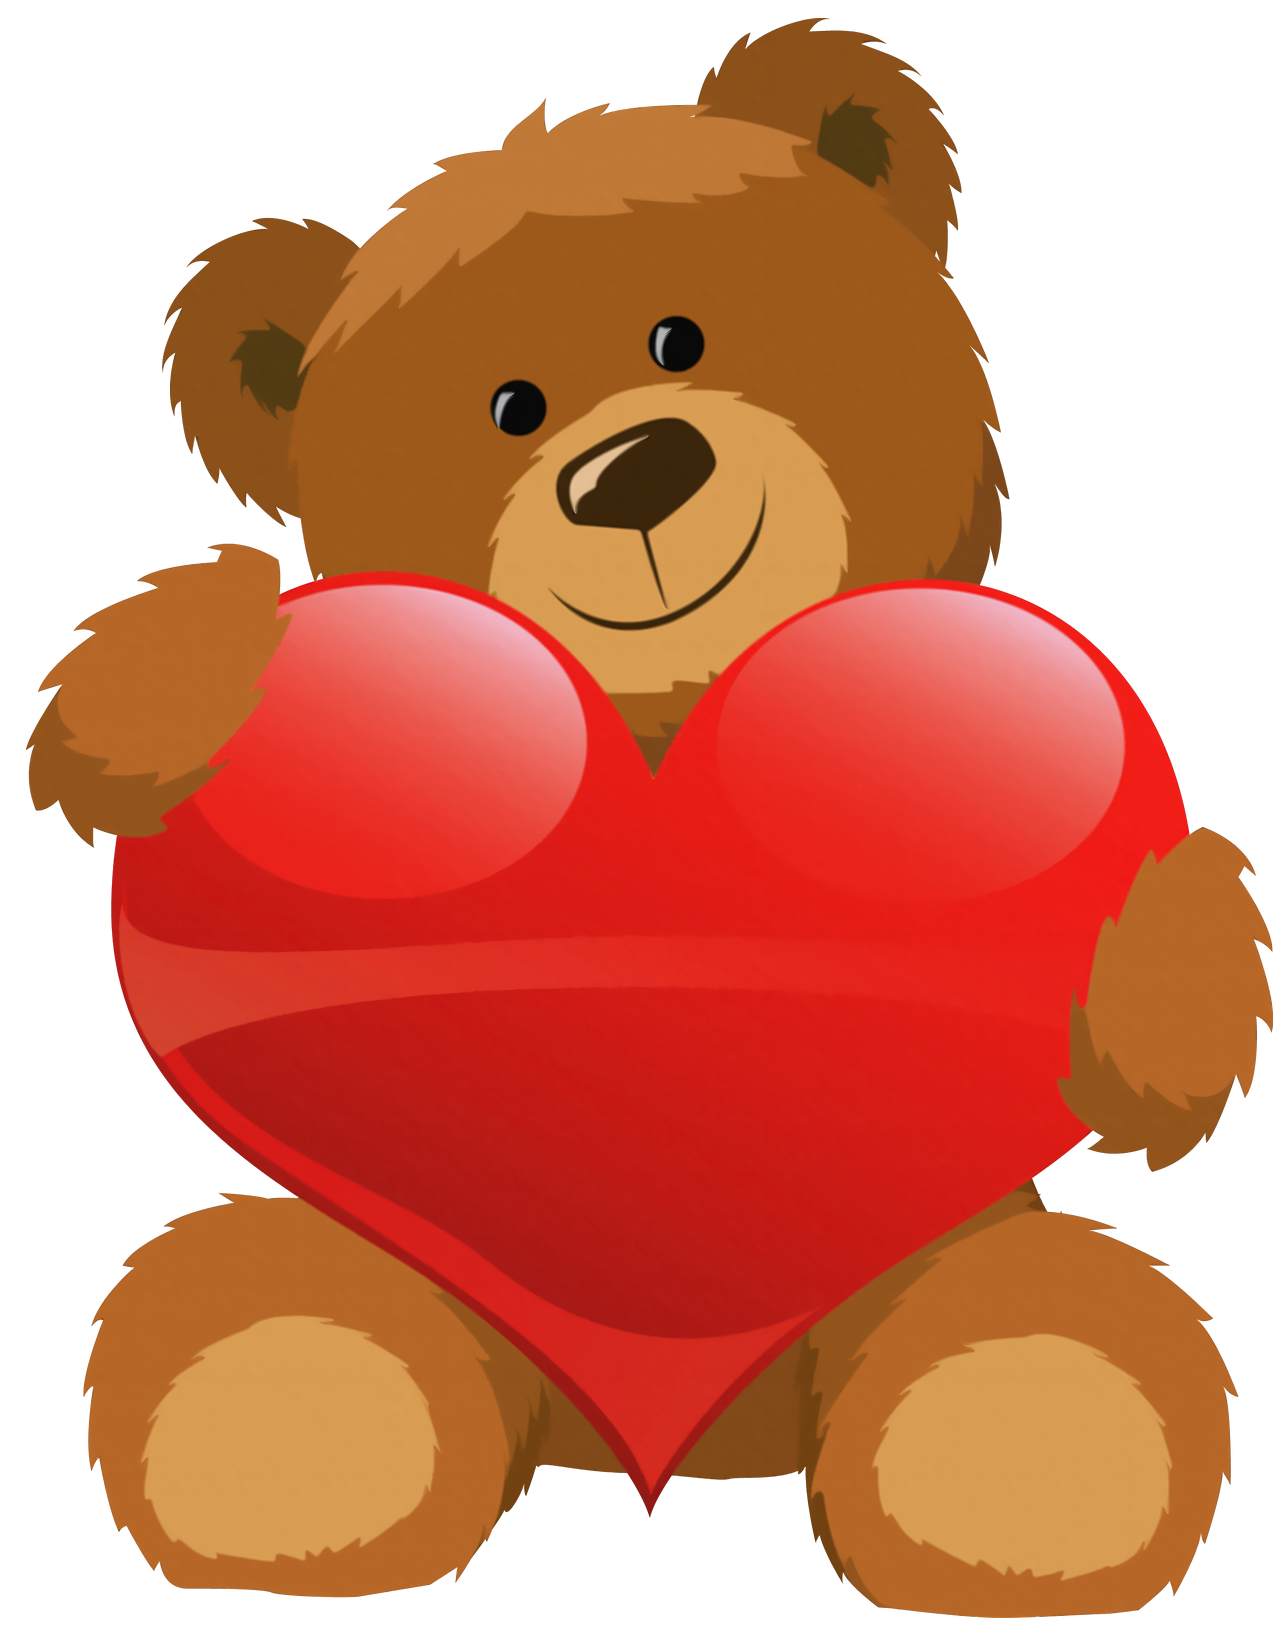 Valentine clipart animated. Cute bear with heart